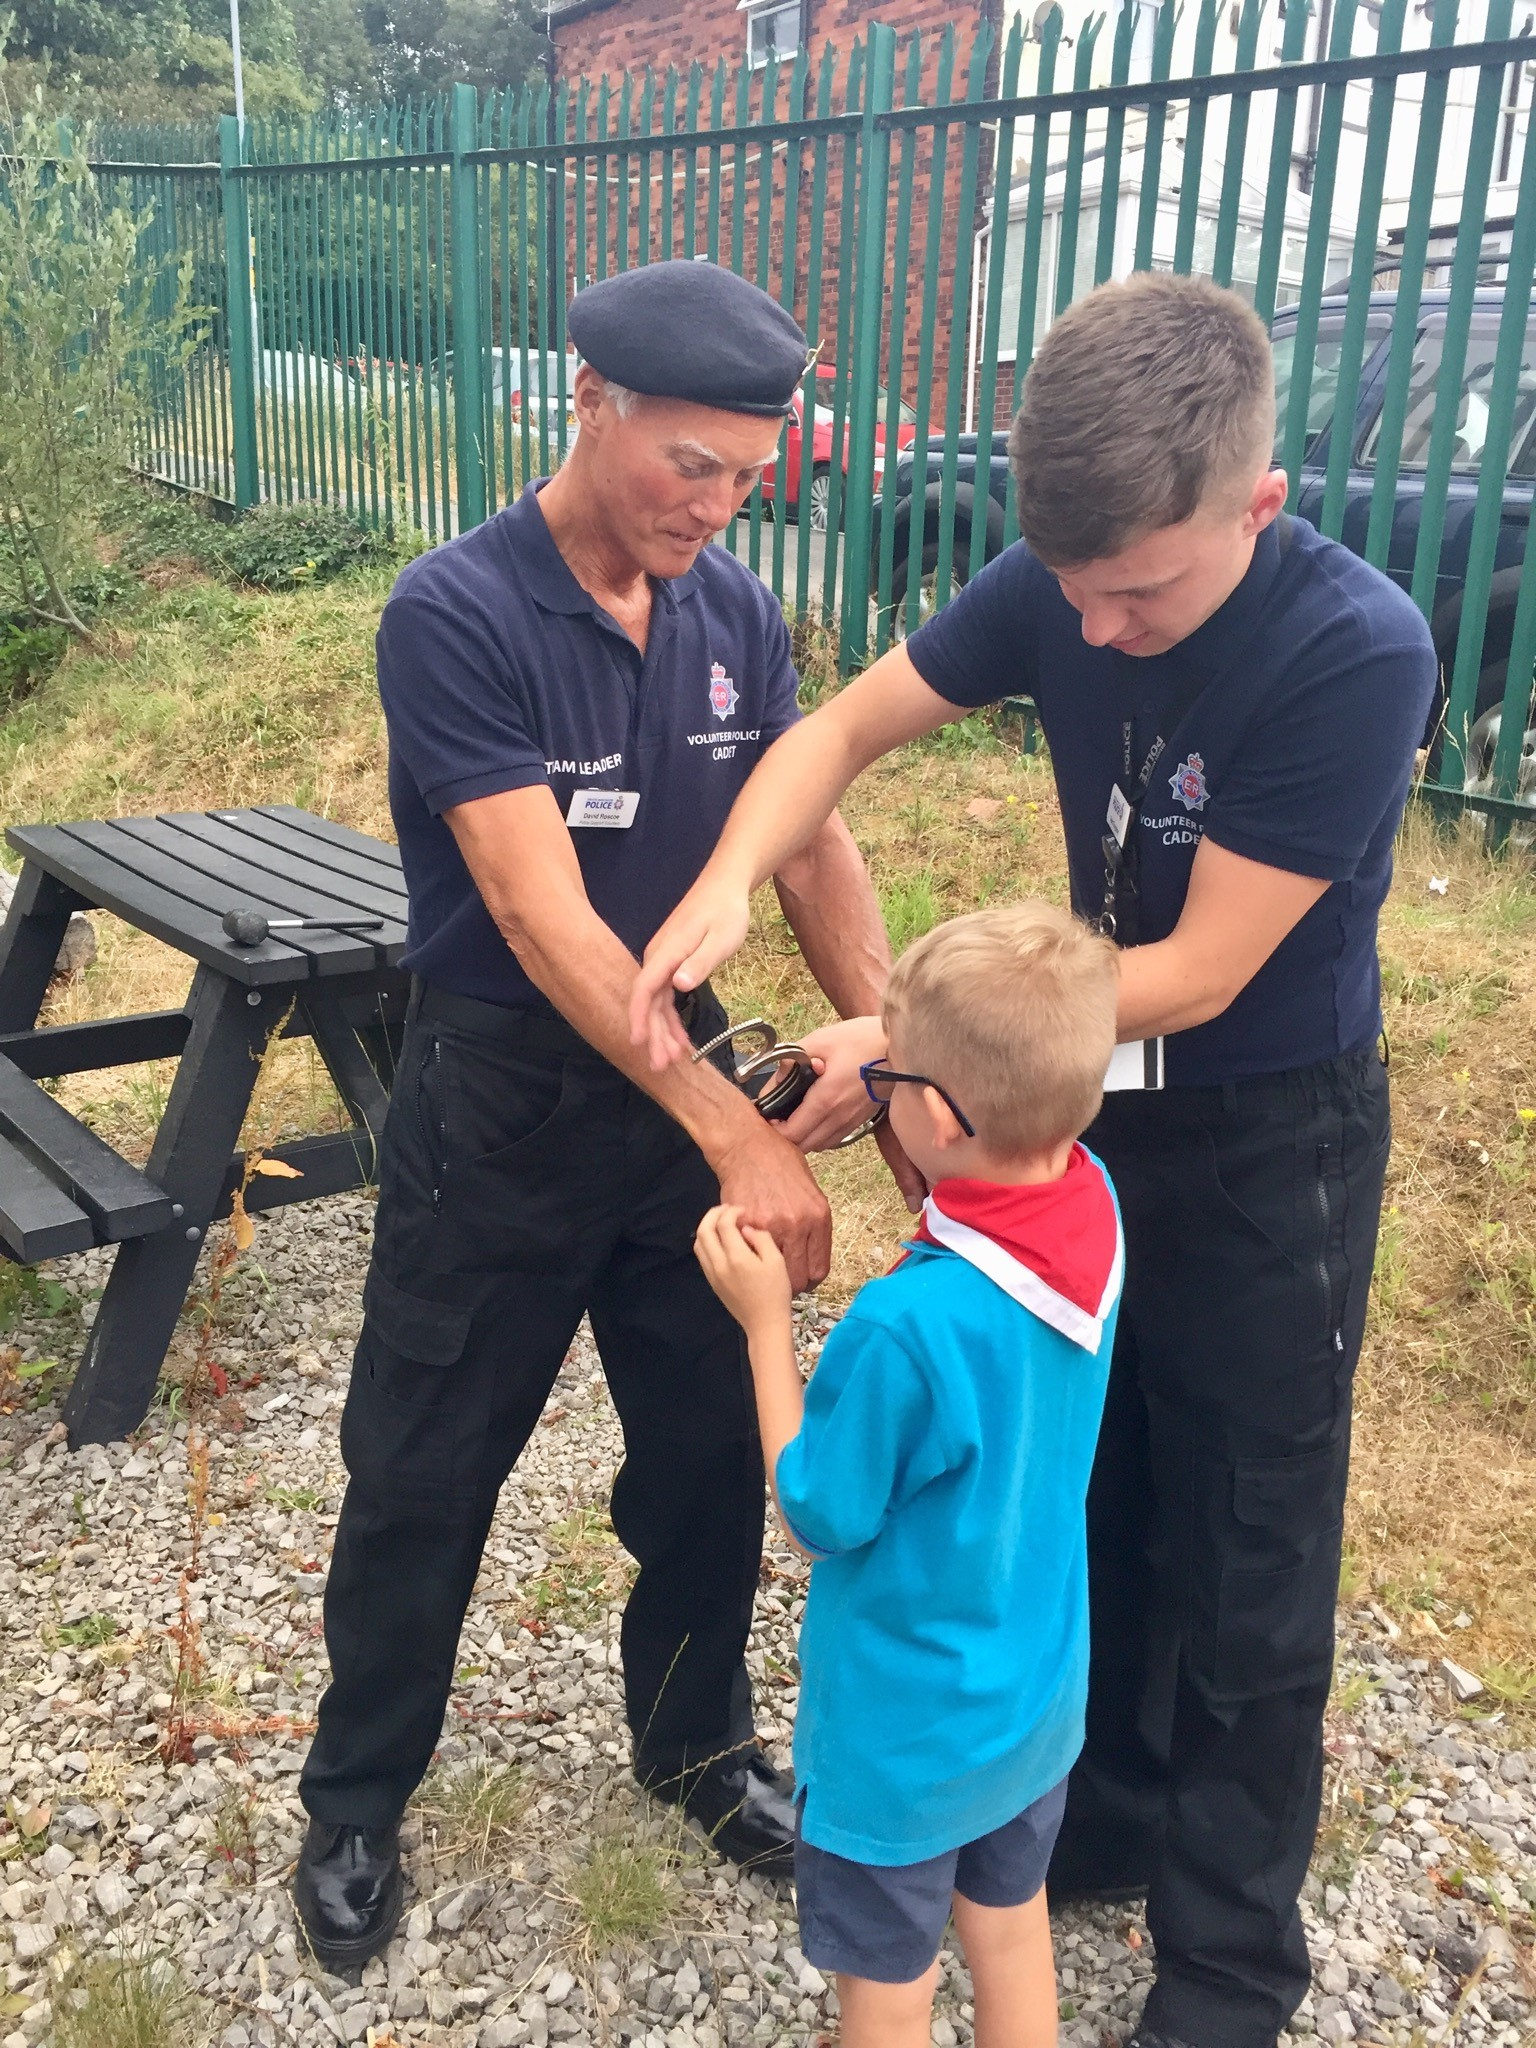 One of the Beavers making his first arrest!!